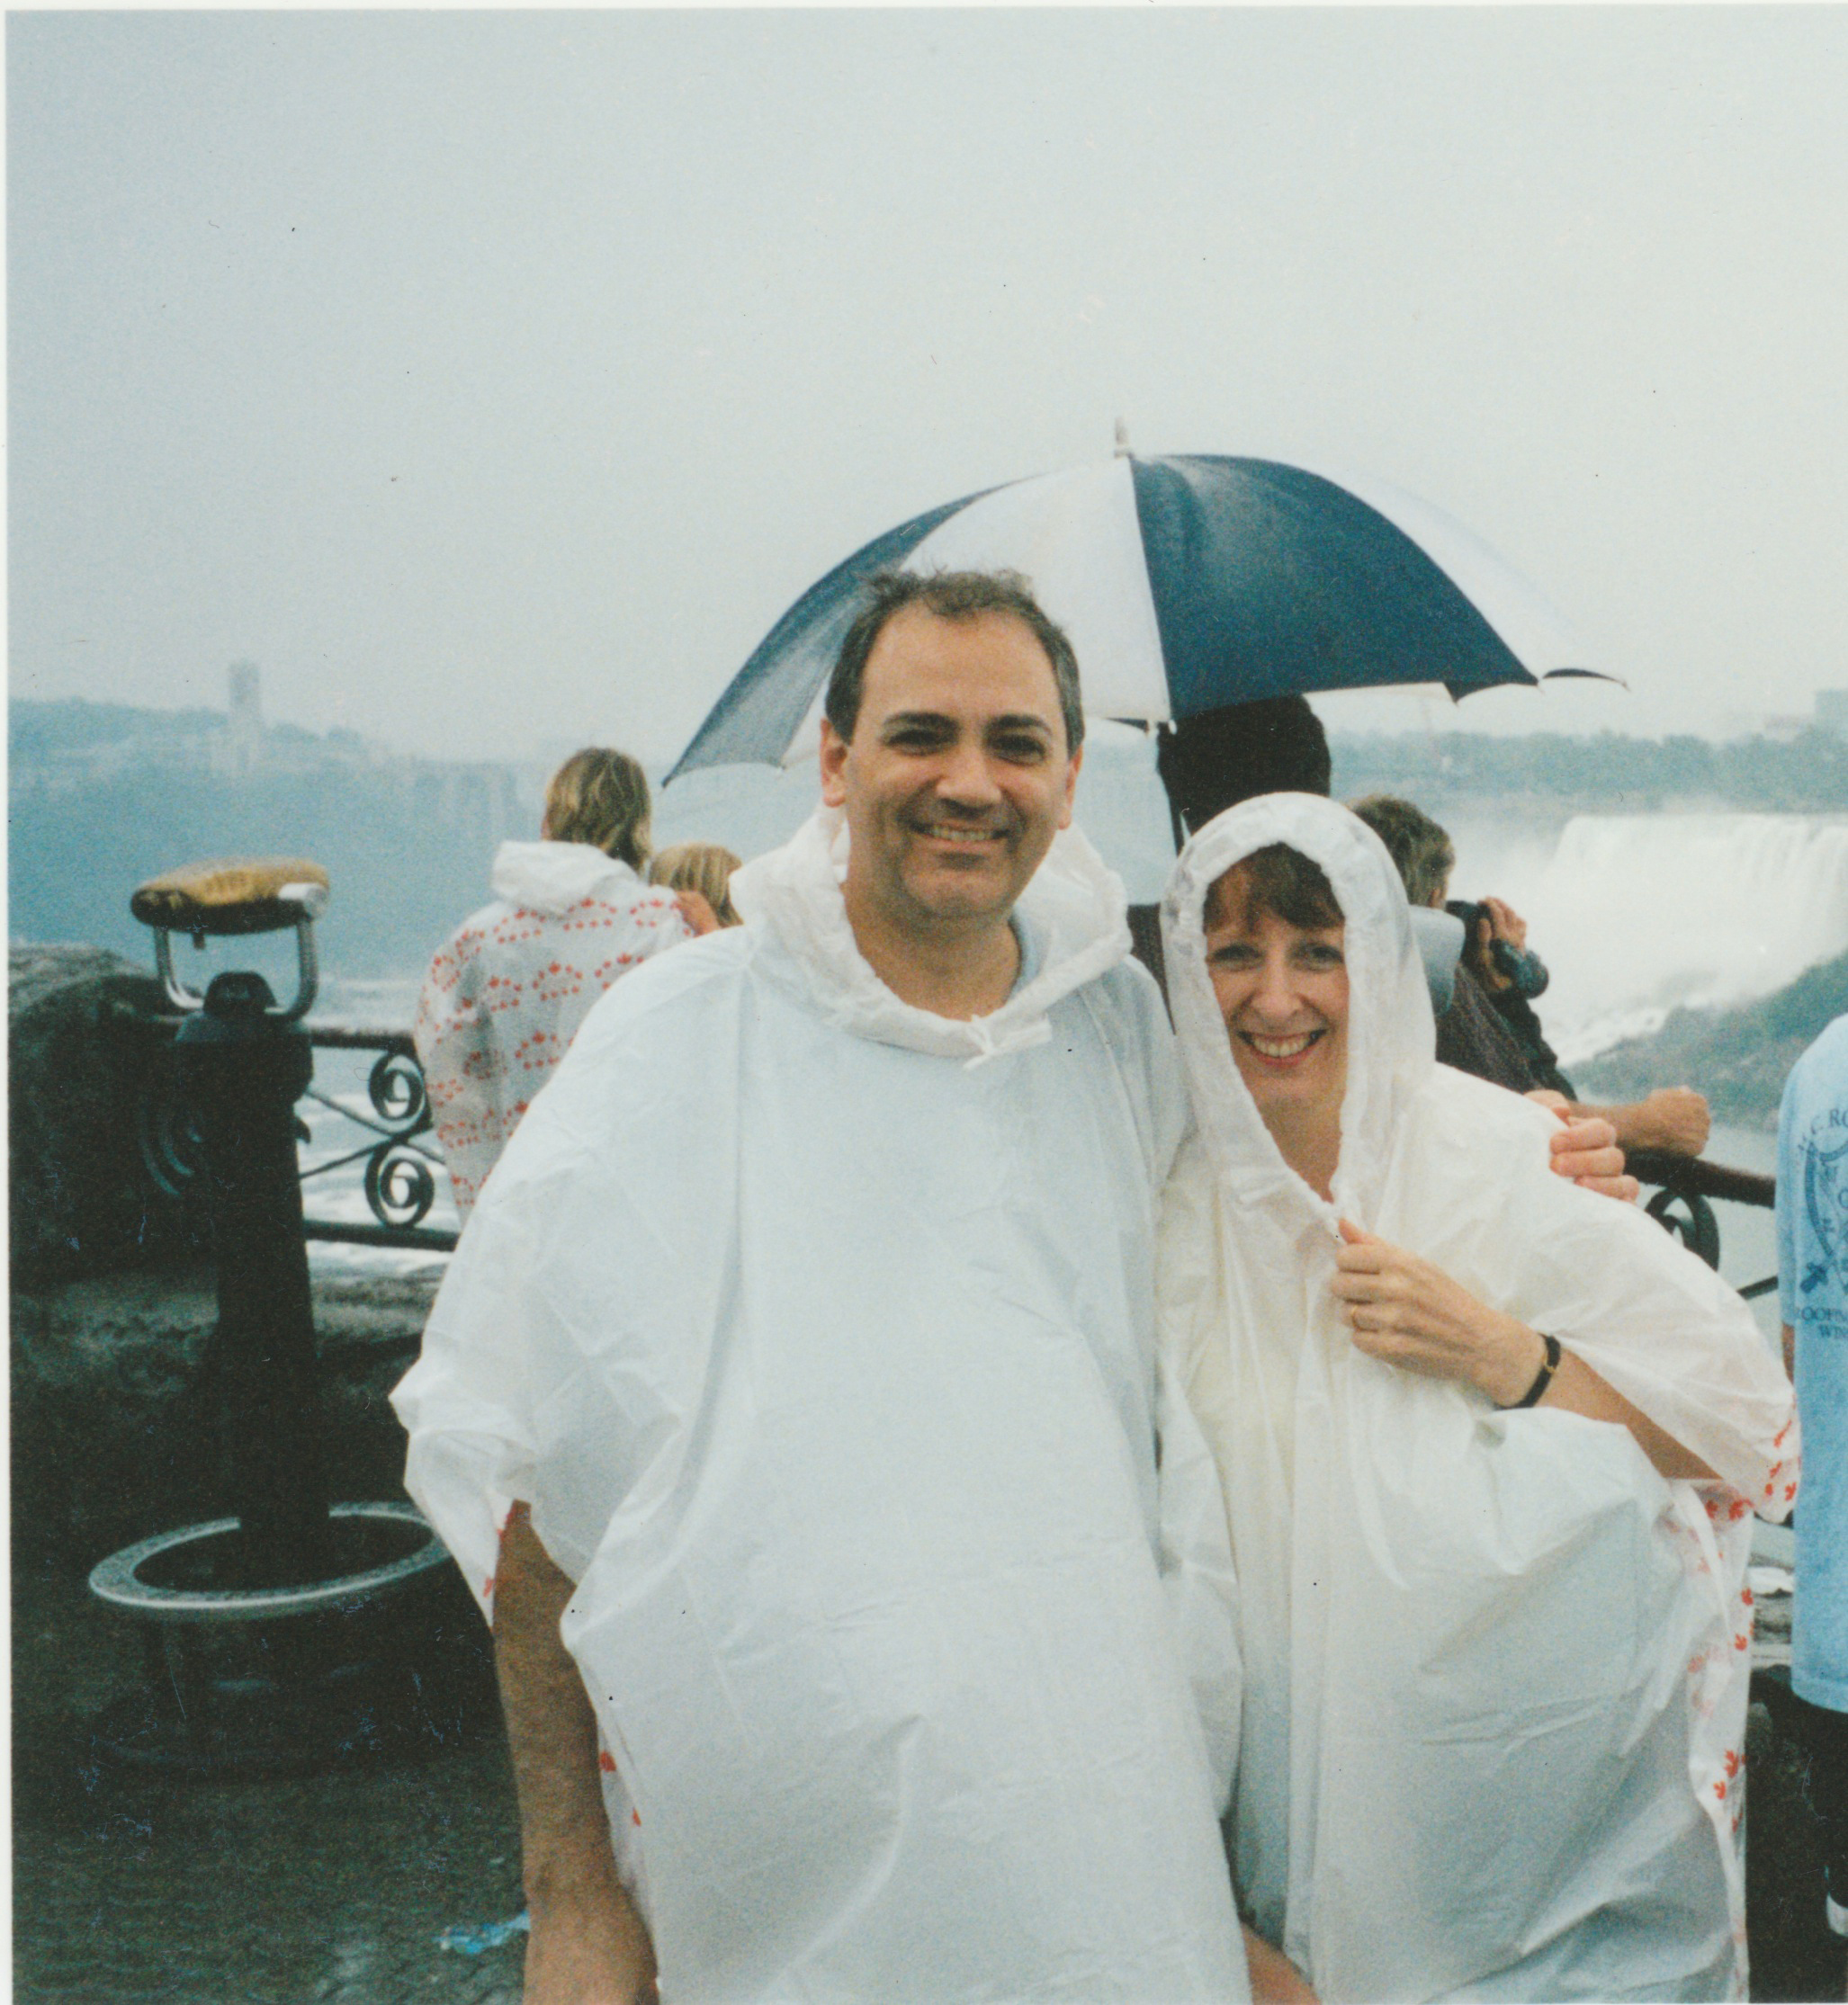 Charles G. Wolf with his late wife Katherine at Niagra Falls, 3 weeks before 9/11